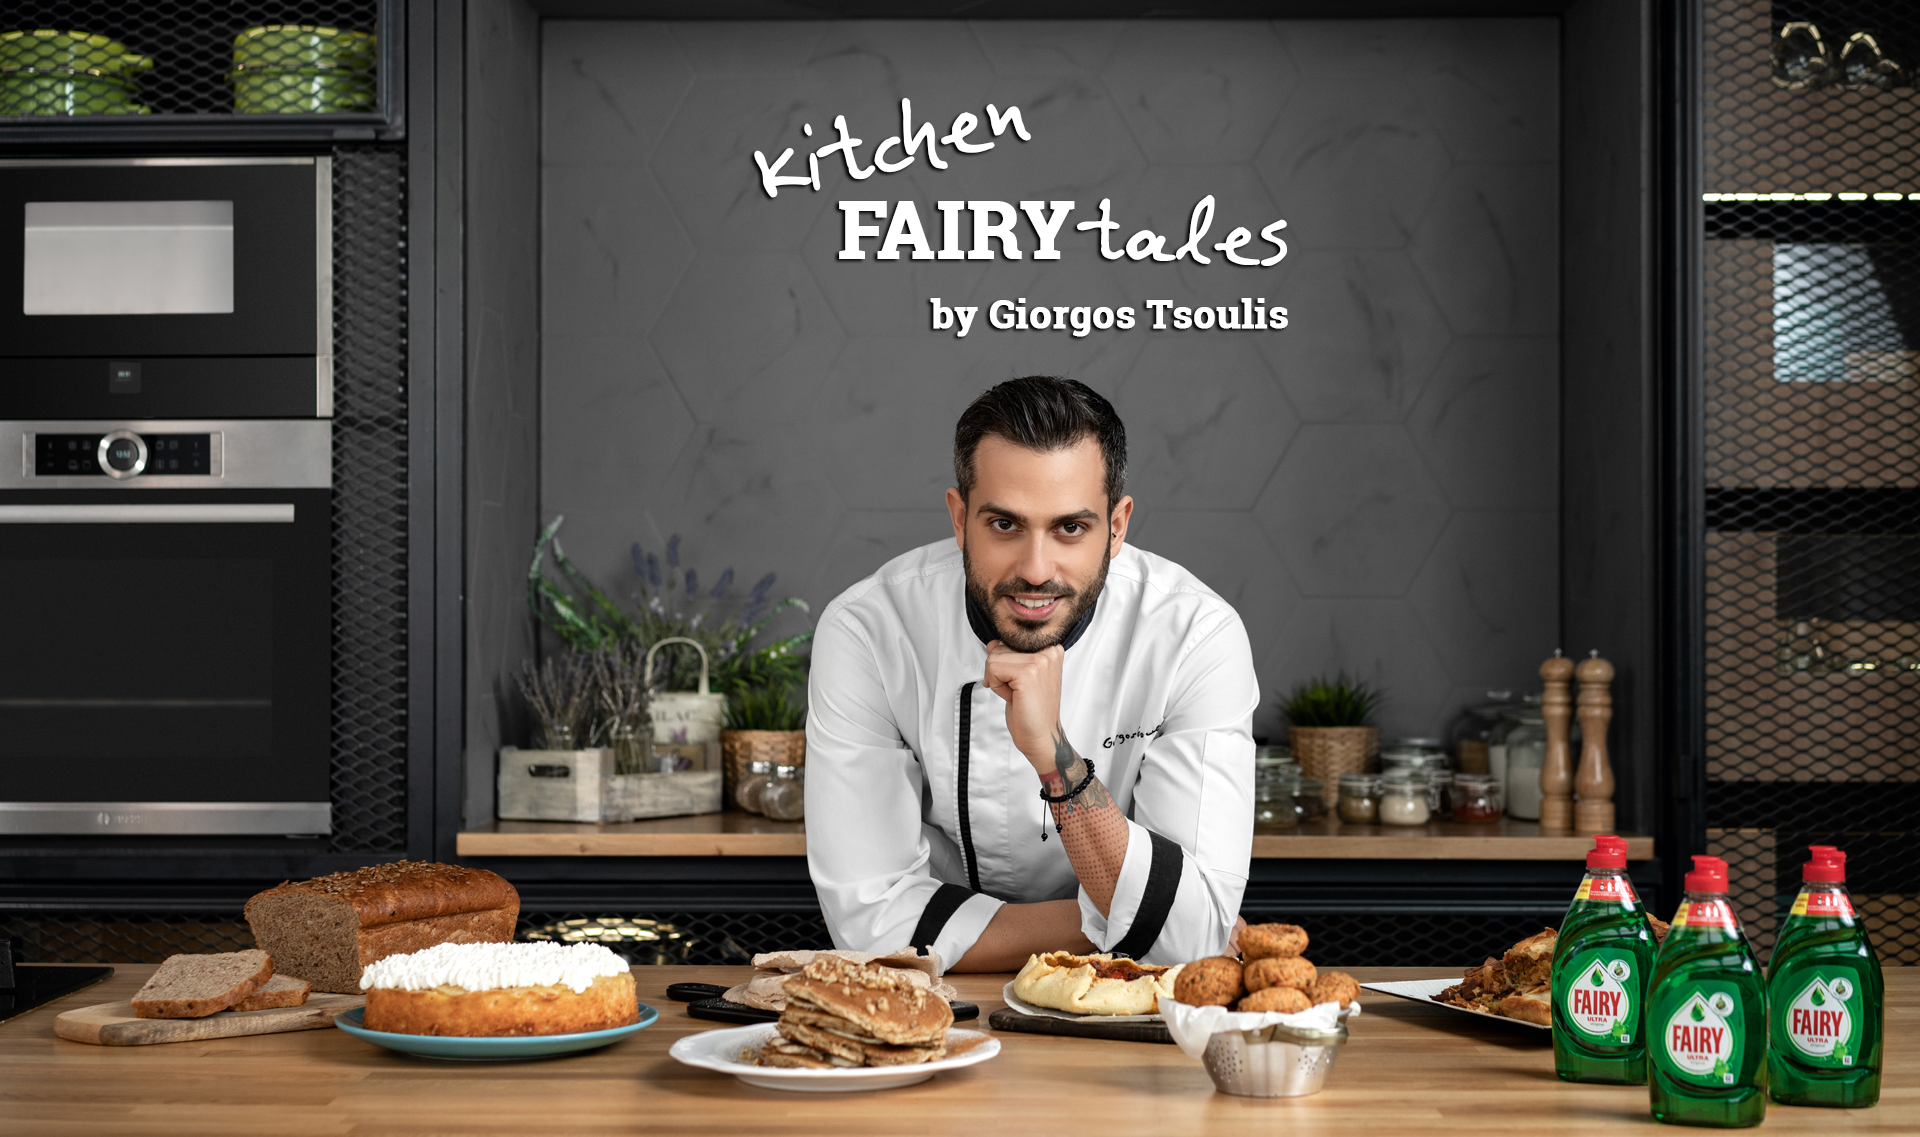 Kitchen FAIRY tales